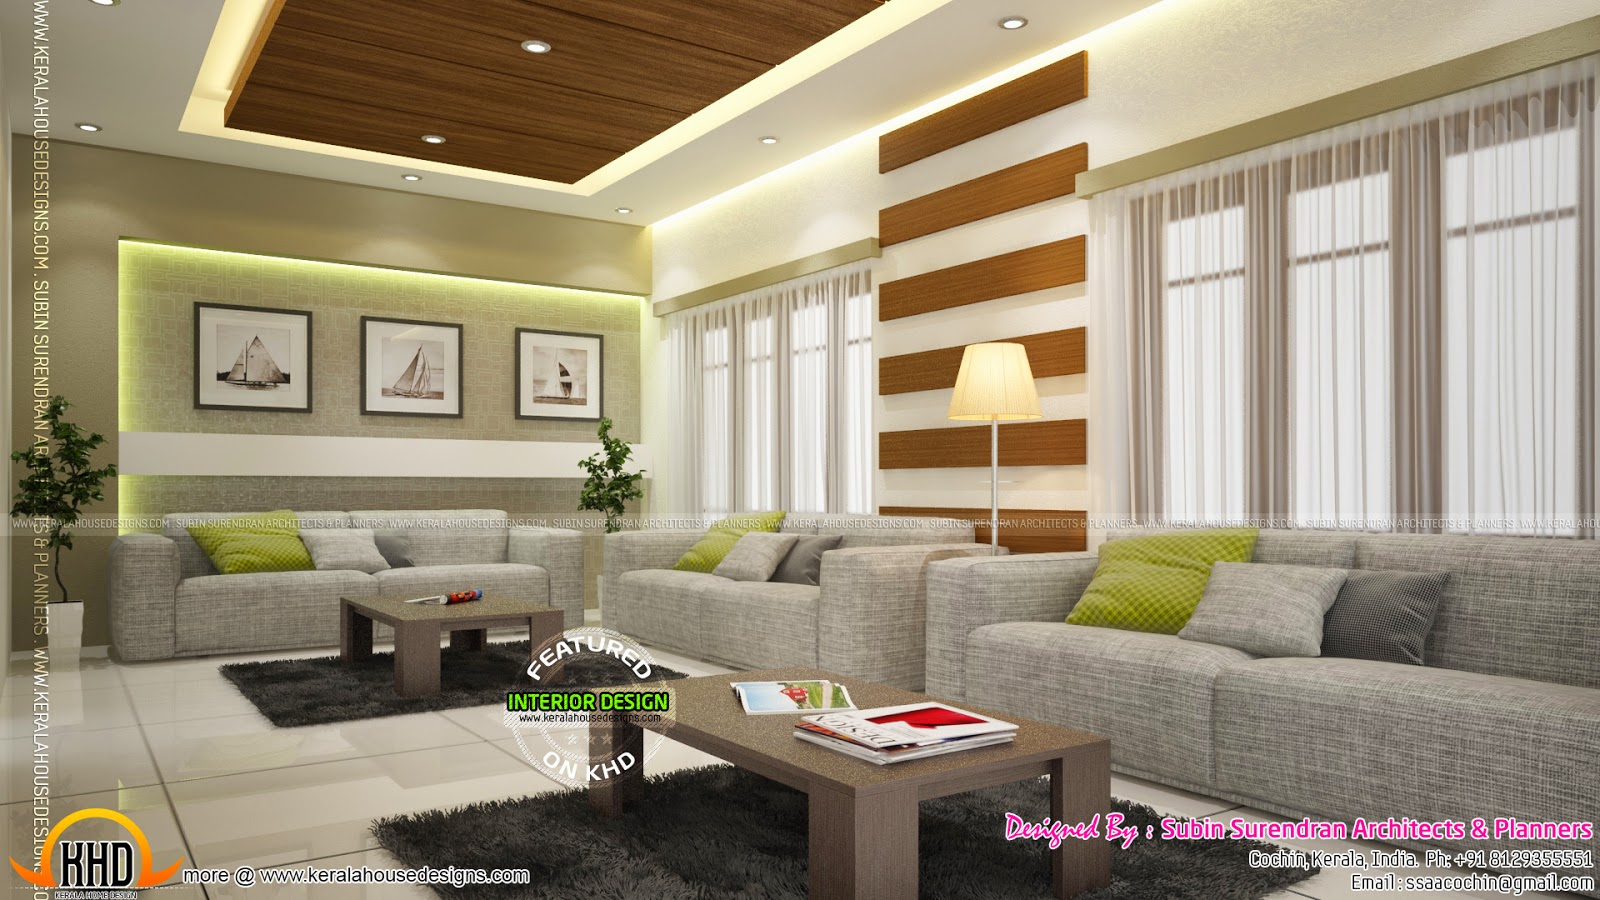 Interior Design Ideas For Living Rooms: Beautiful Home Interior Designs